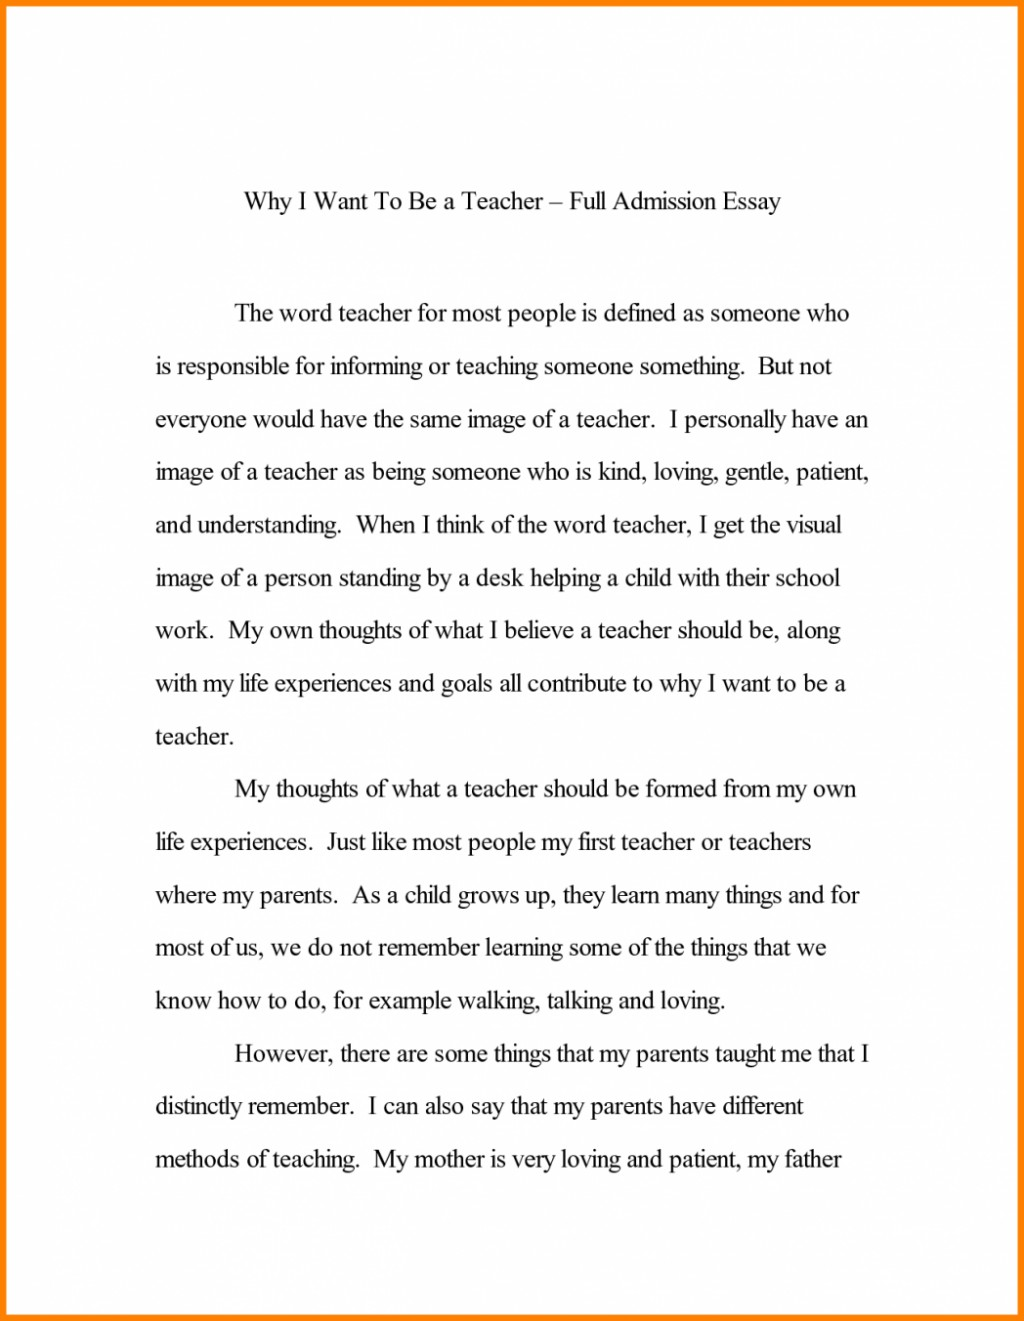 018 Common App Example Essays That Worked Application College Essay Sample For Guidelines Unique Best Examples Harvard Prompts 2014-15 Large